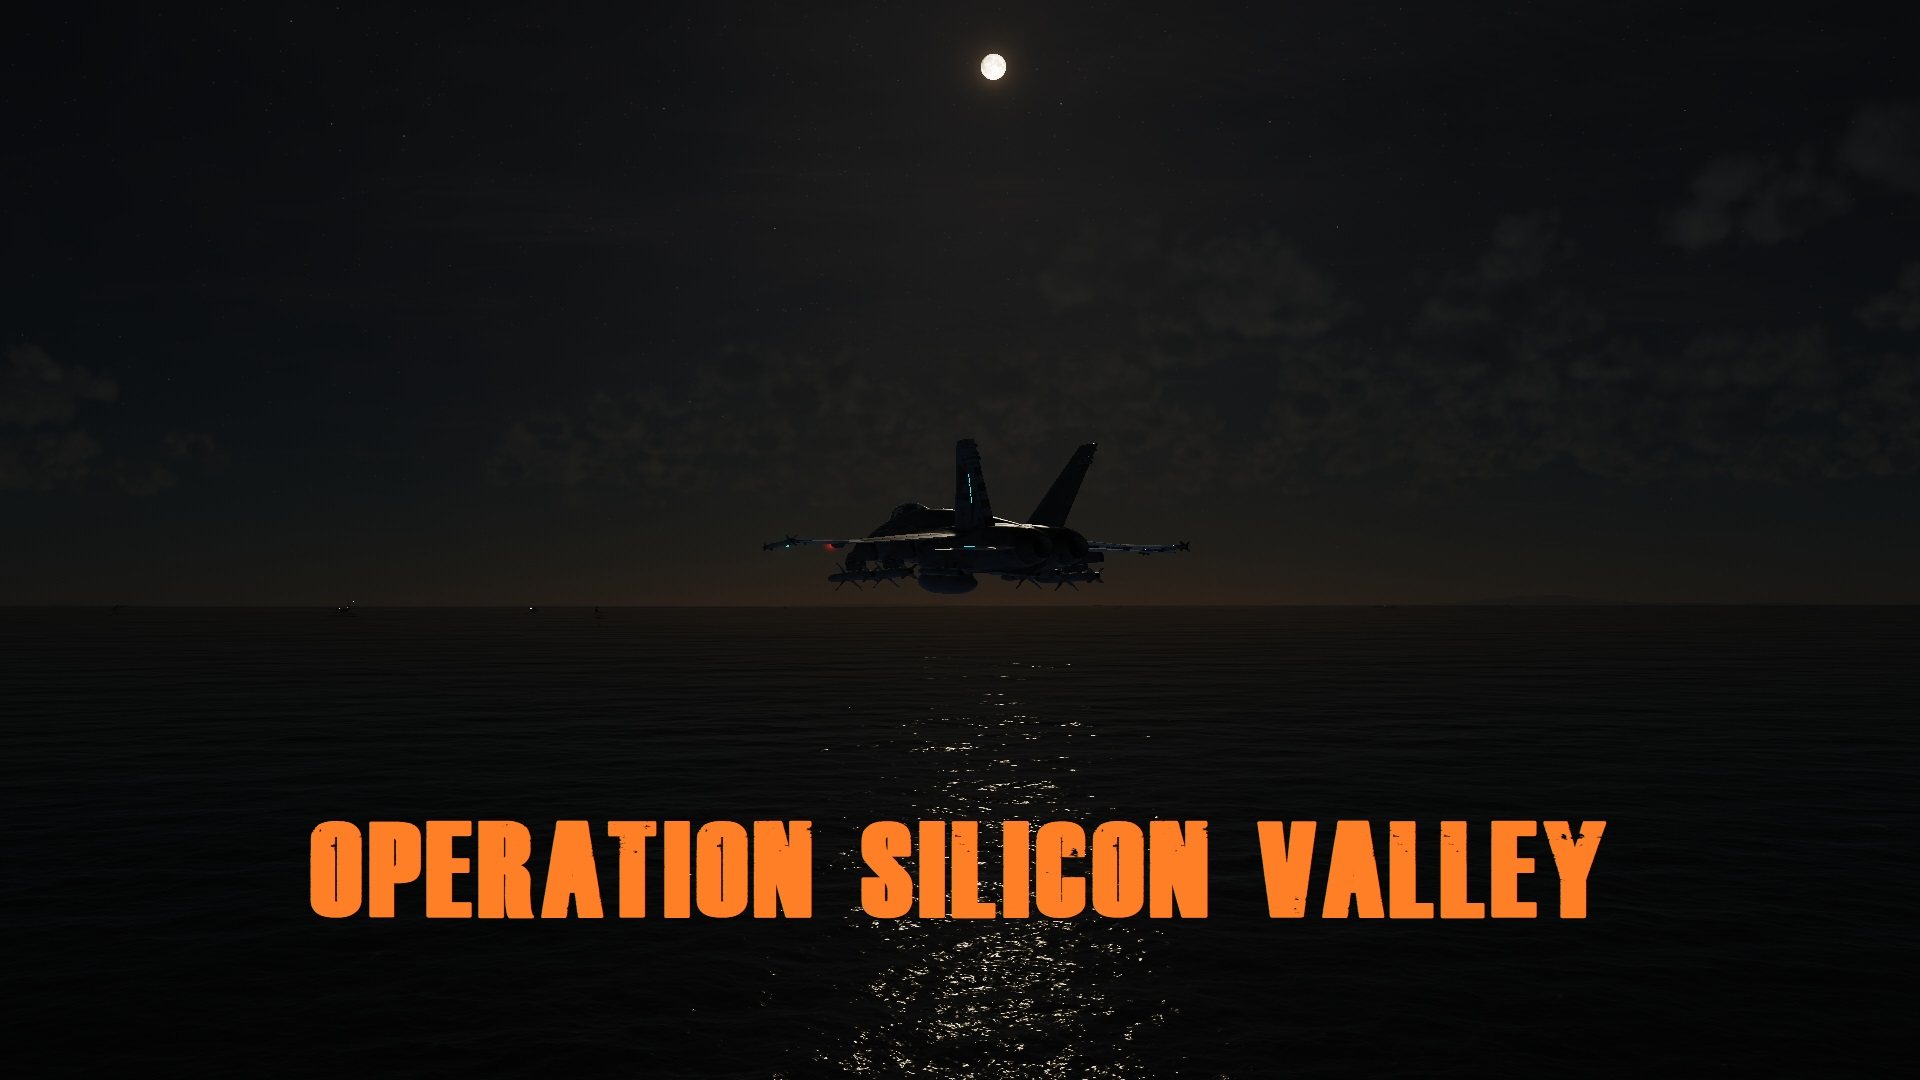 Operation Silicon Valley